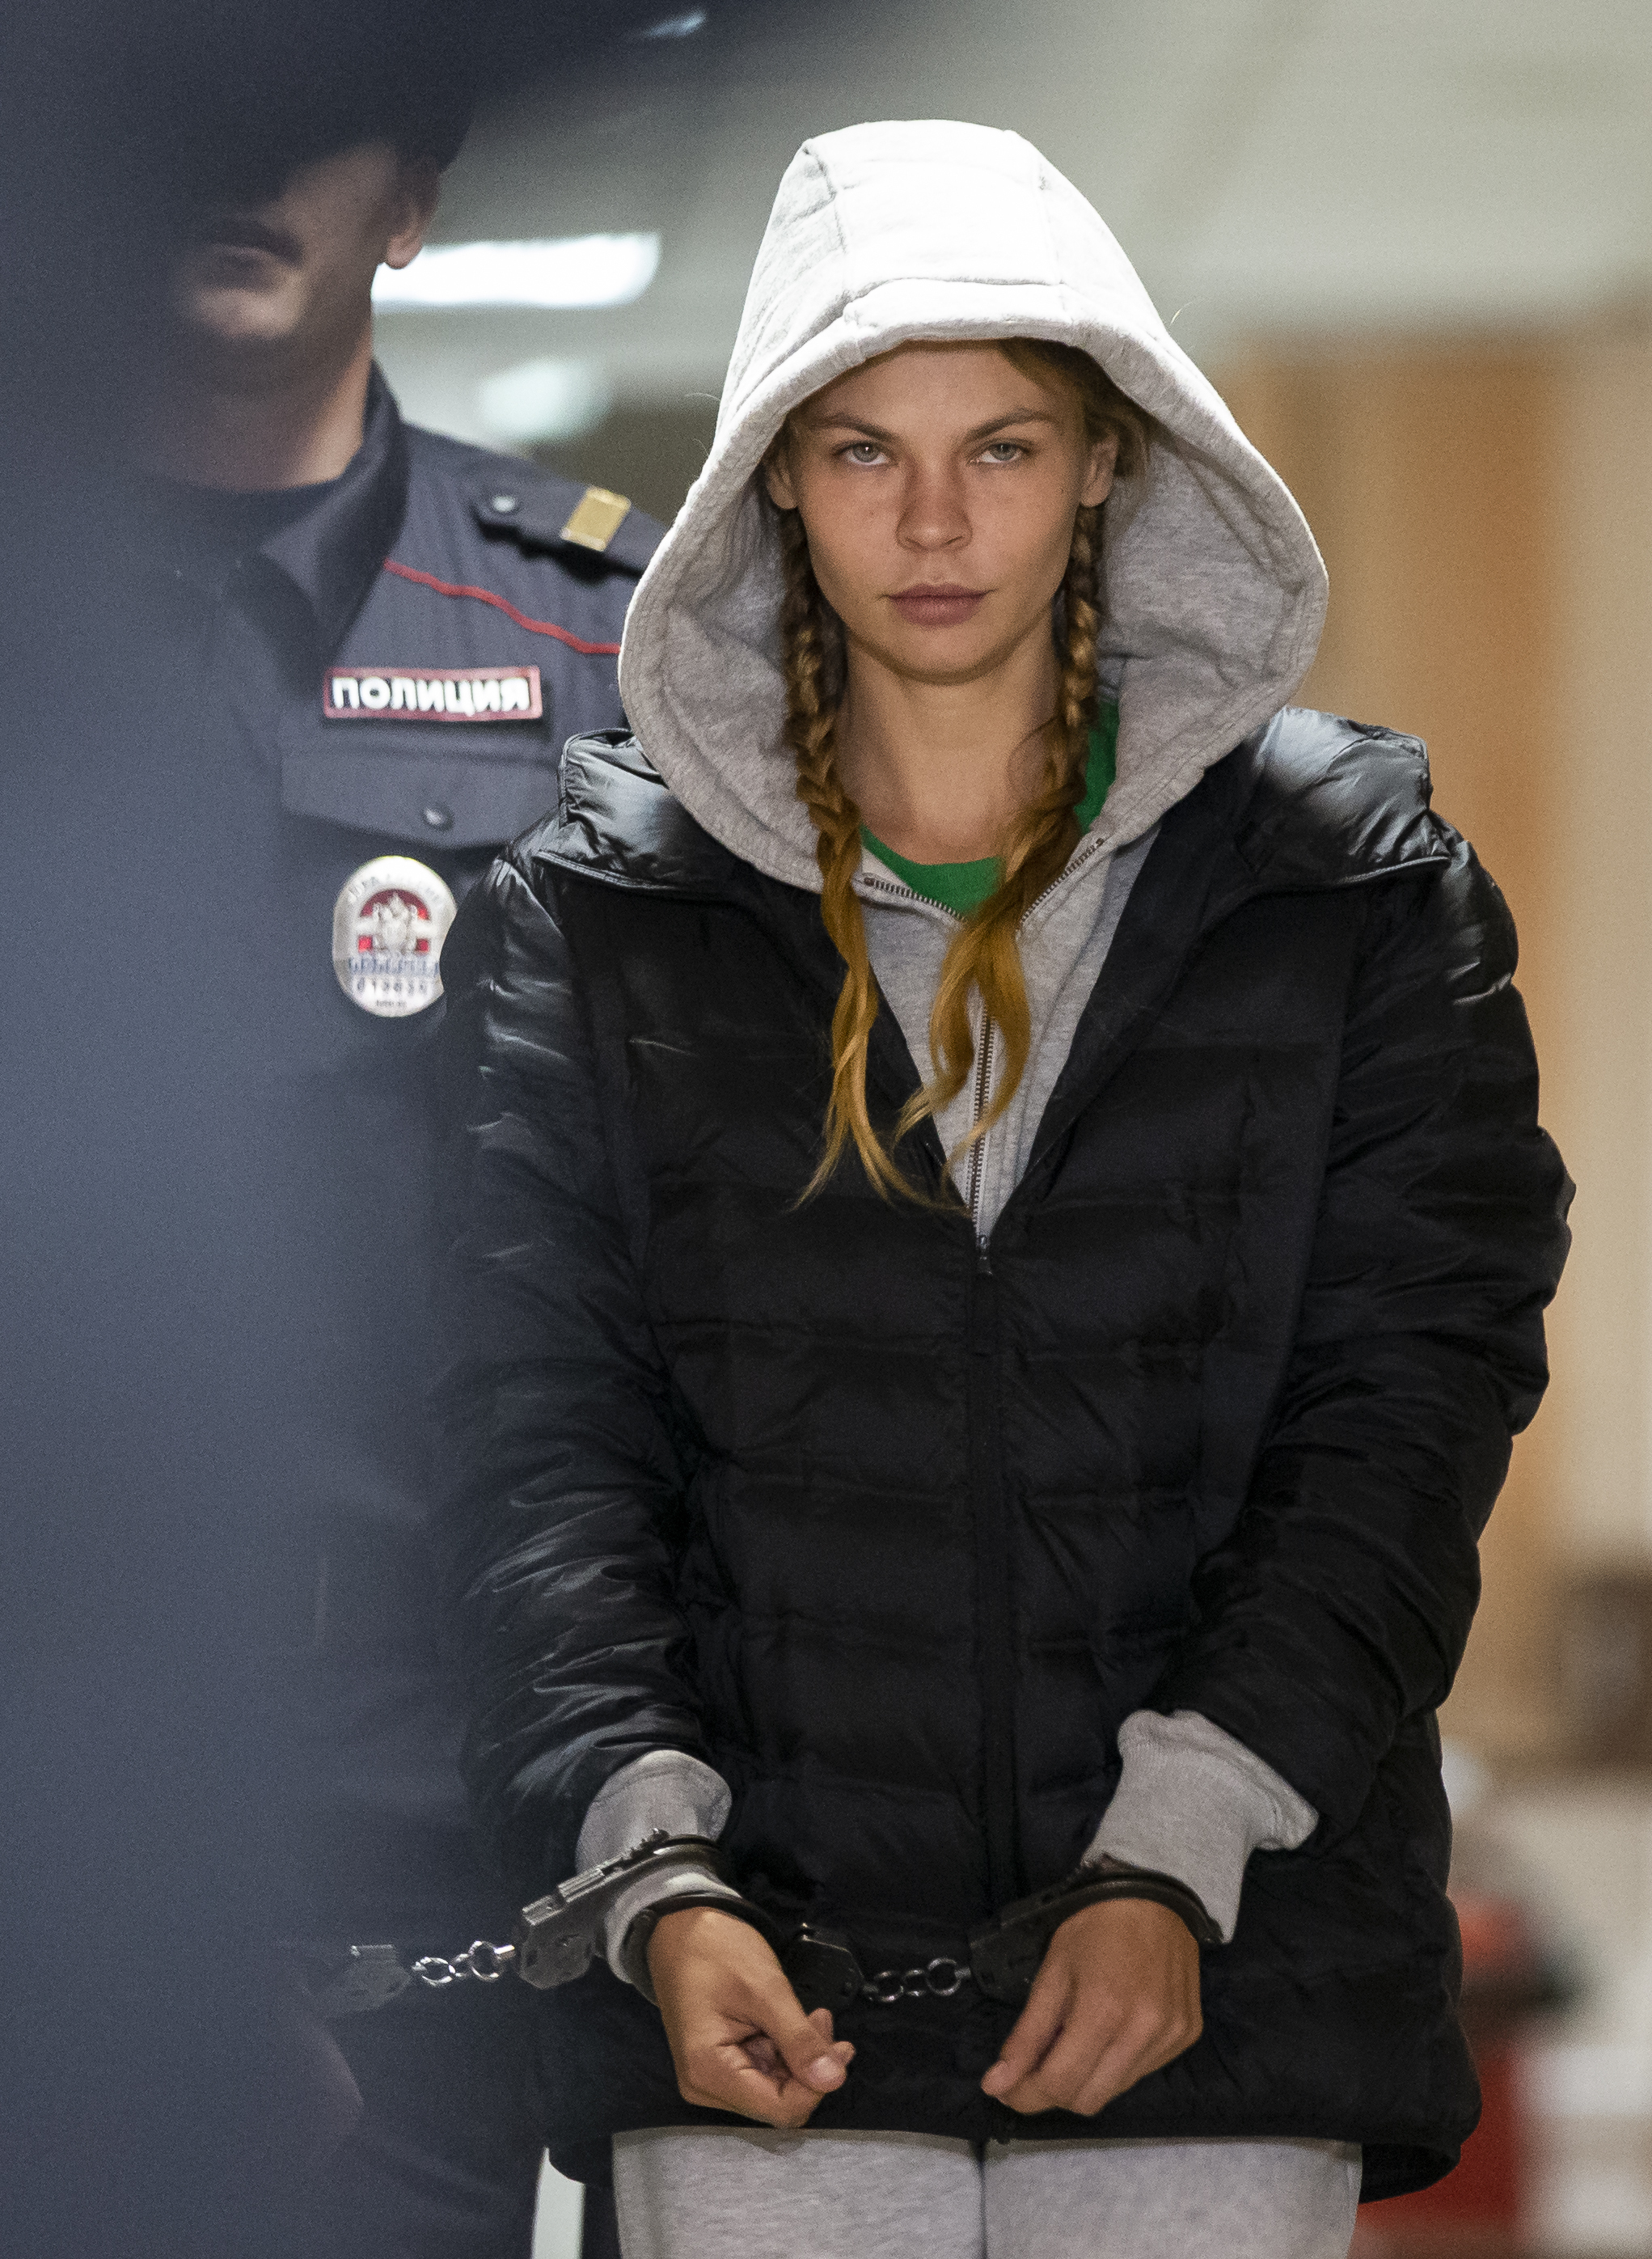 Anastasia Vashukevich, also known on social media as Nastya Rybka is escorted in the court room in Moscow, Russia, Saturday, Jan. 19, 2019. A Belarusian model who claimed last year that she had evidence of Russian interference in the election of Donald Trump as U.S. president was arrested immediately upon her arrival in Moscow on Thursday following deportation from Thailand. (AP Photo/Alexander Zemlianichenko)